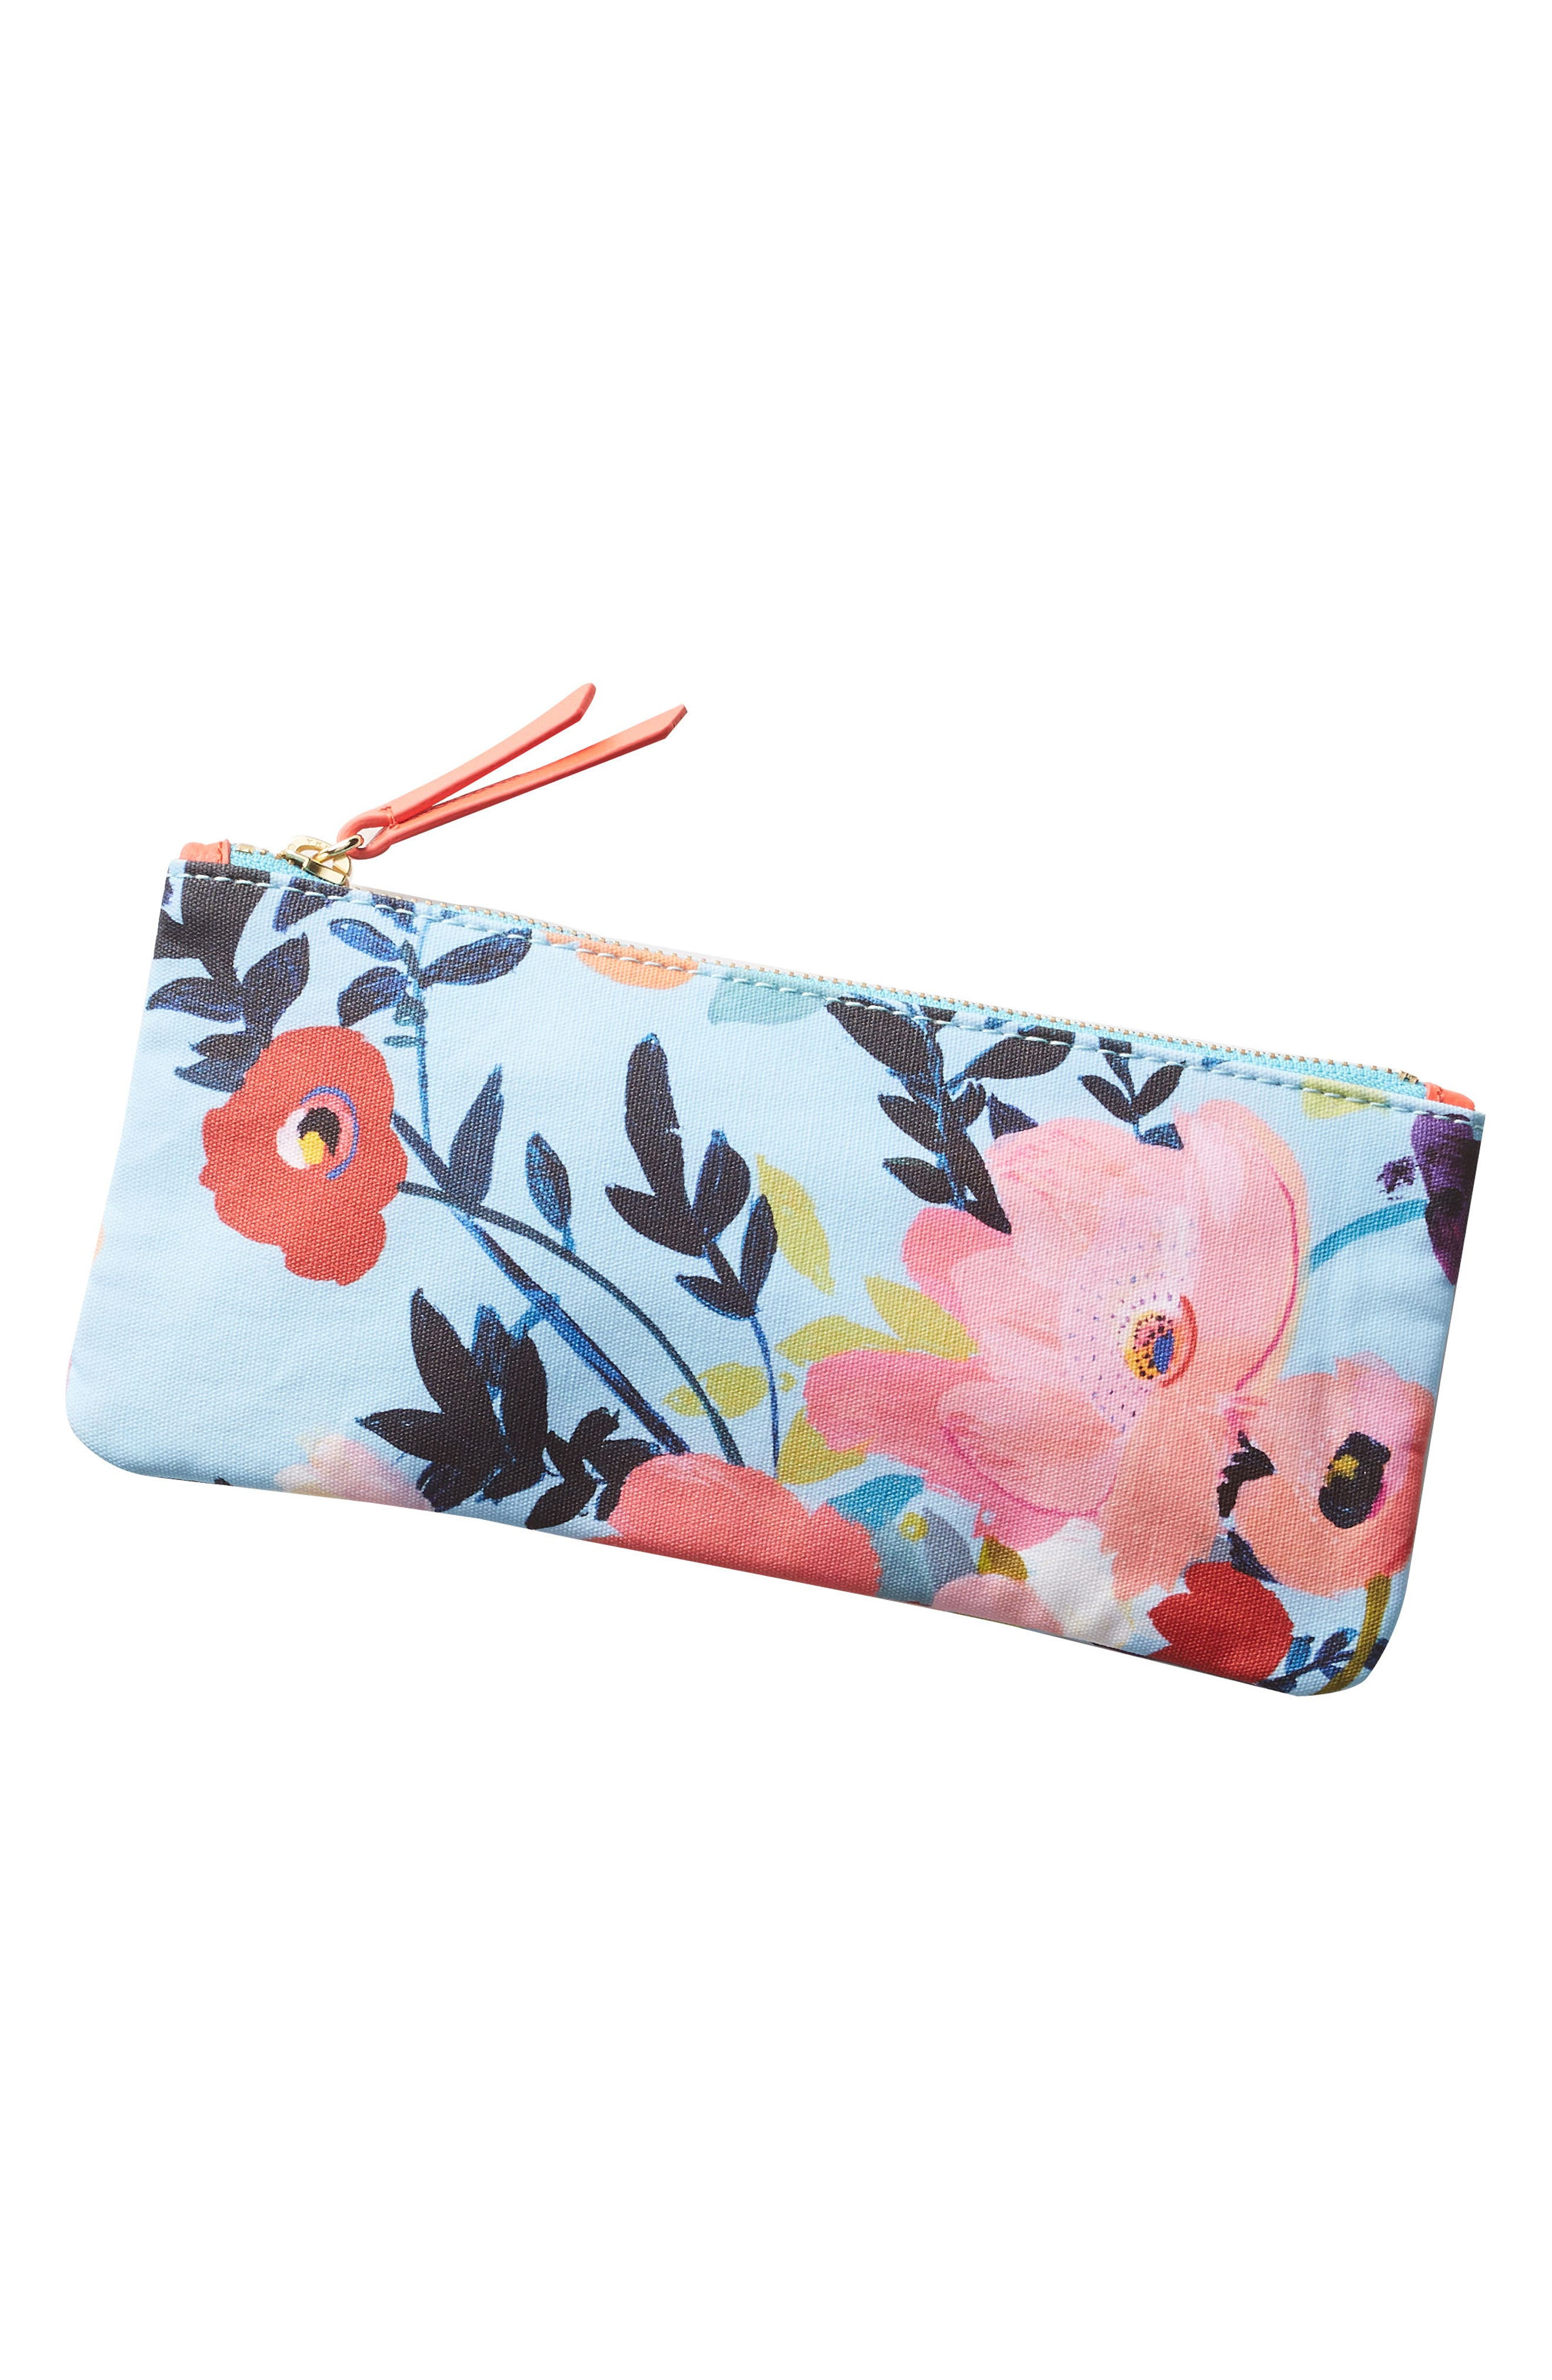 Picturesque Florals Pencil Pouch,                             Alternate thumbnail 3, color,                             400